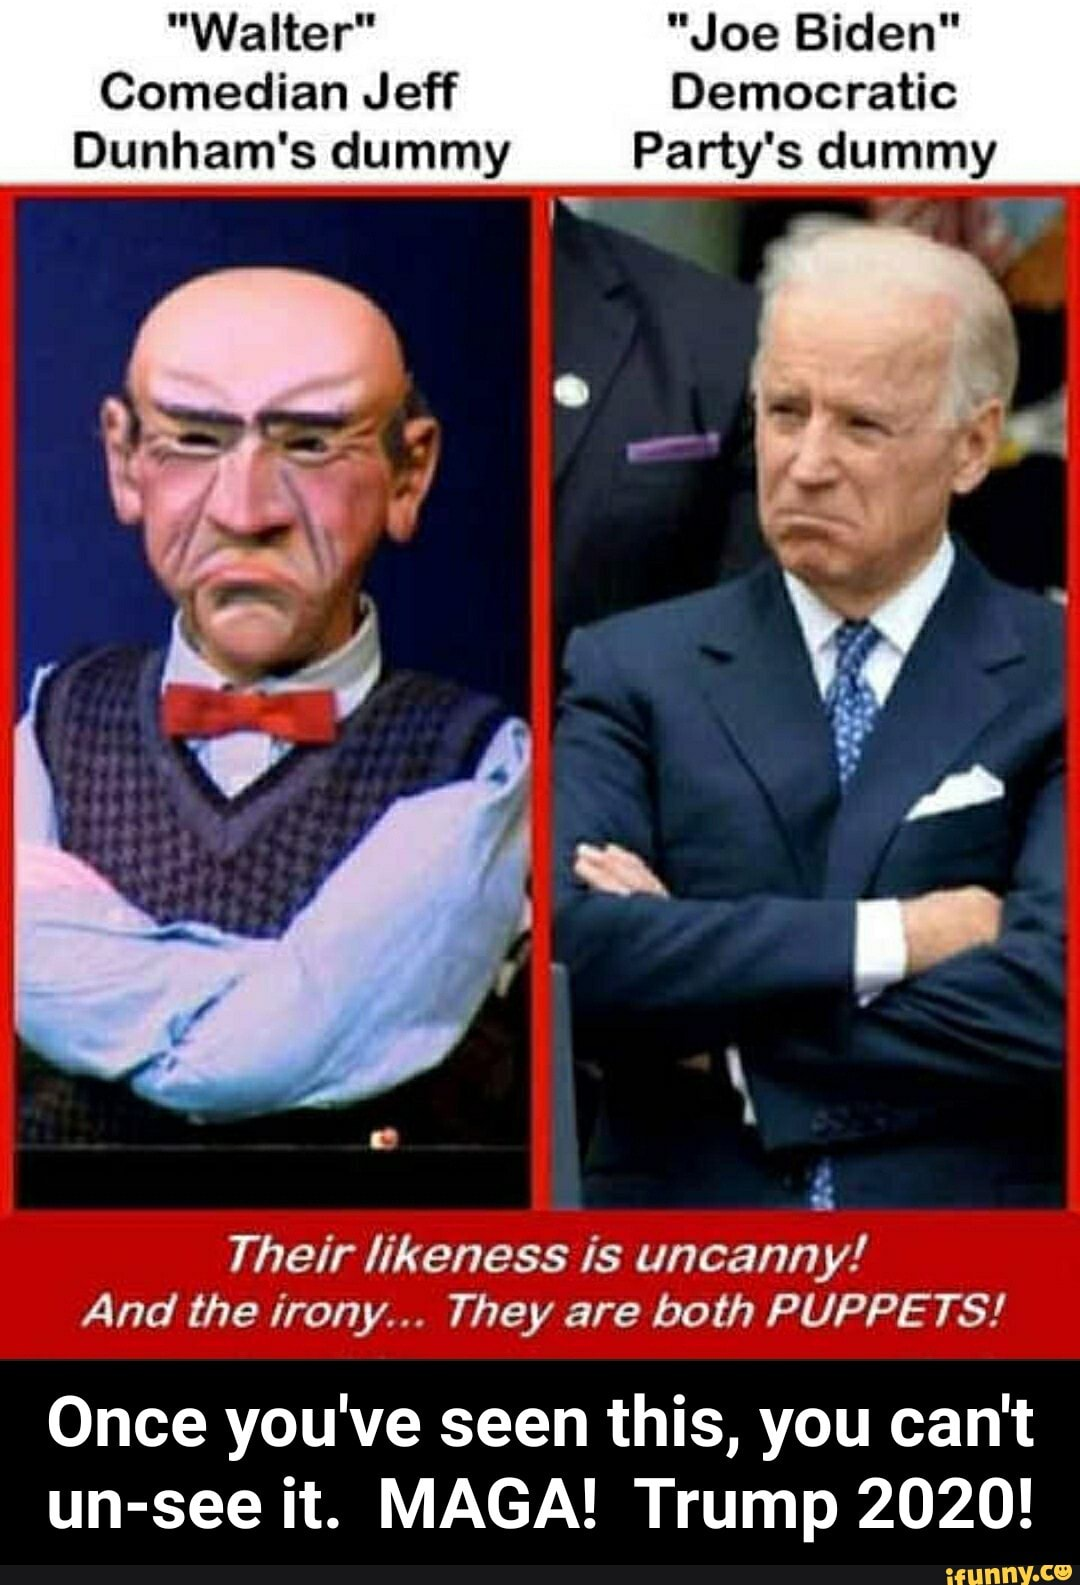 """""""Walter"""" """"Joe Biden""""Comedian Jeff DemocraticDunham's dummy Party's dummyTheir likeness is uncanny!And the irony... They are both PUPPETS!Once you've seen this, you can't un-see it. MAGA! Trump 2020! - Once you've seen this, you can't un-see it.  MAGA!  Trump 2020!"""